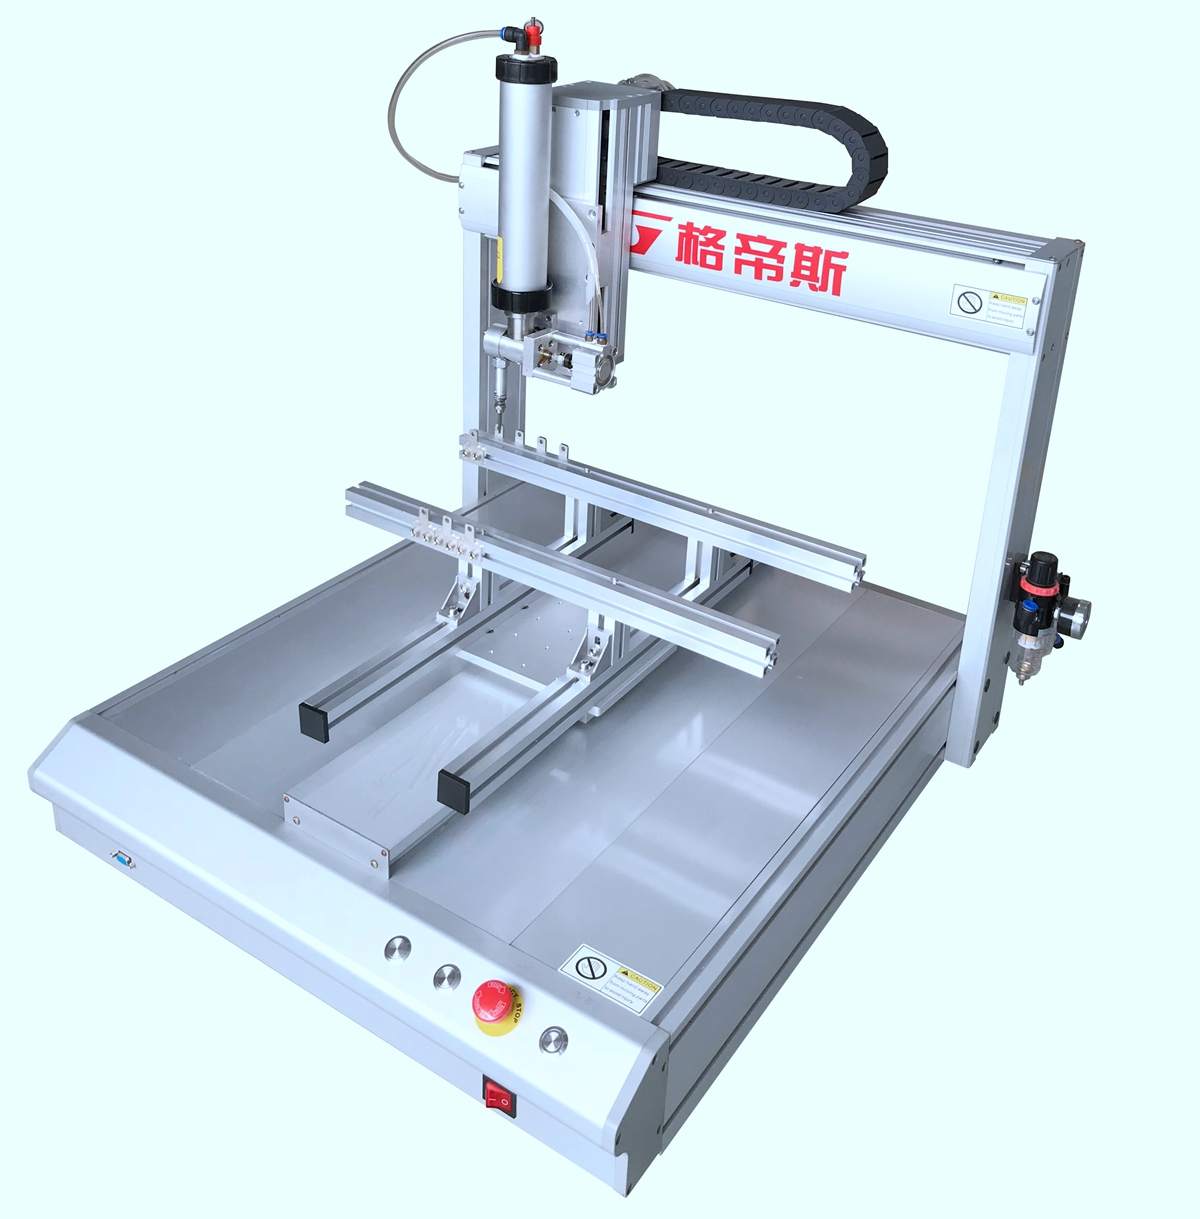 TD-600 Desktop Three-axis Glue Dispensing Machine